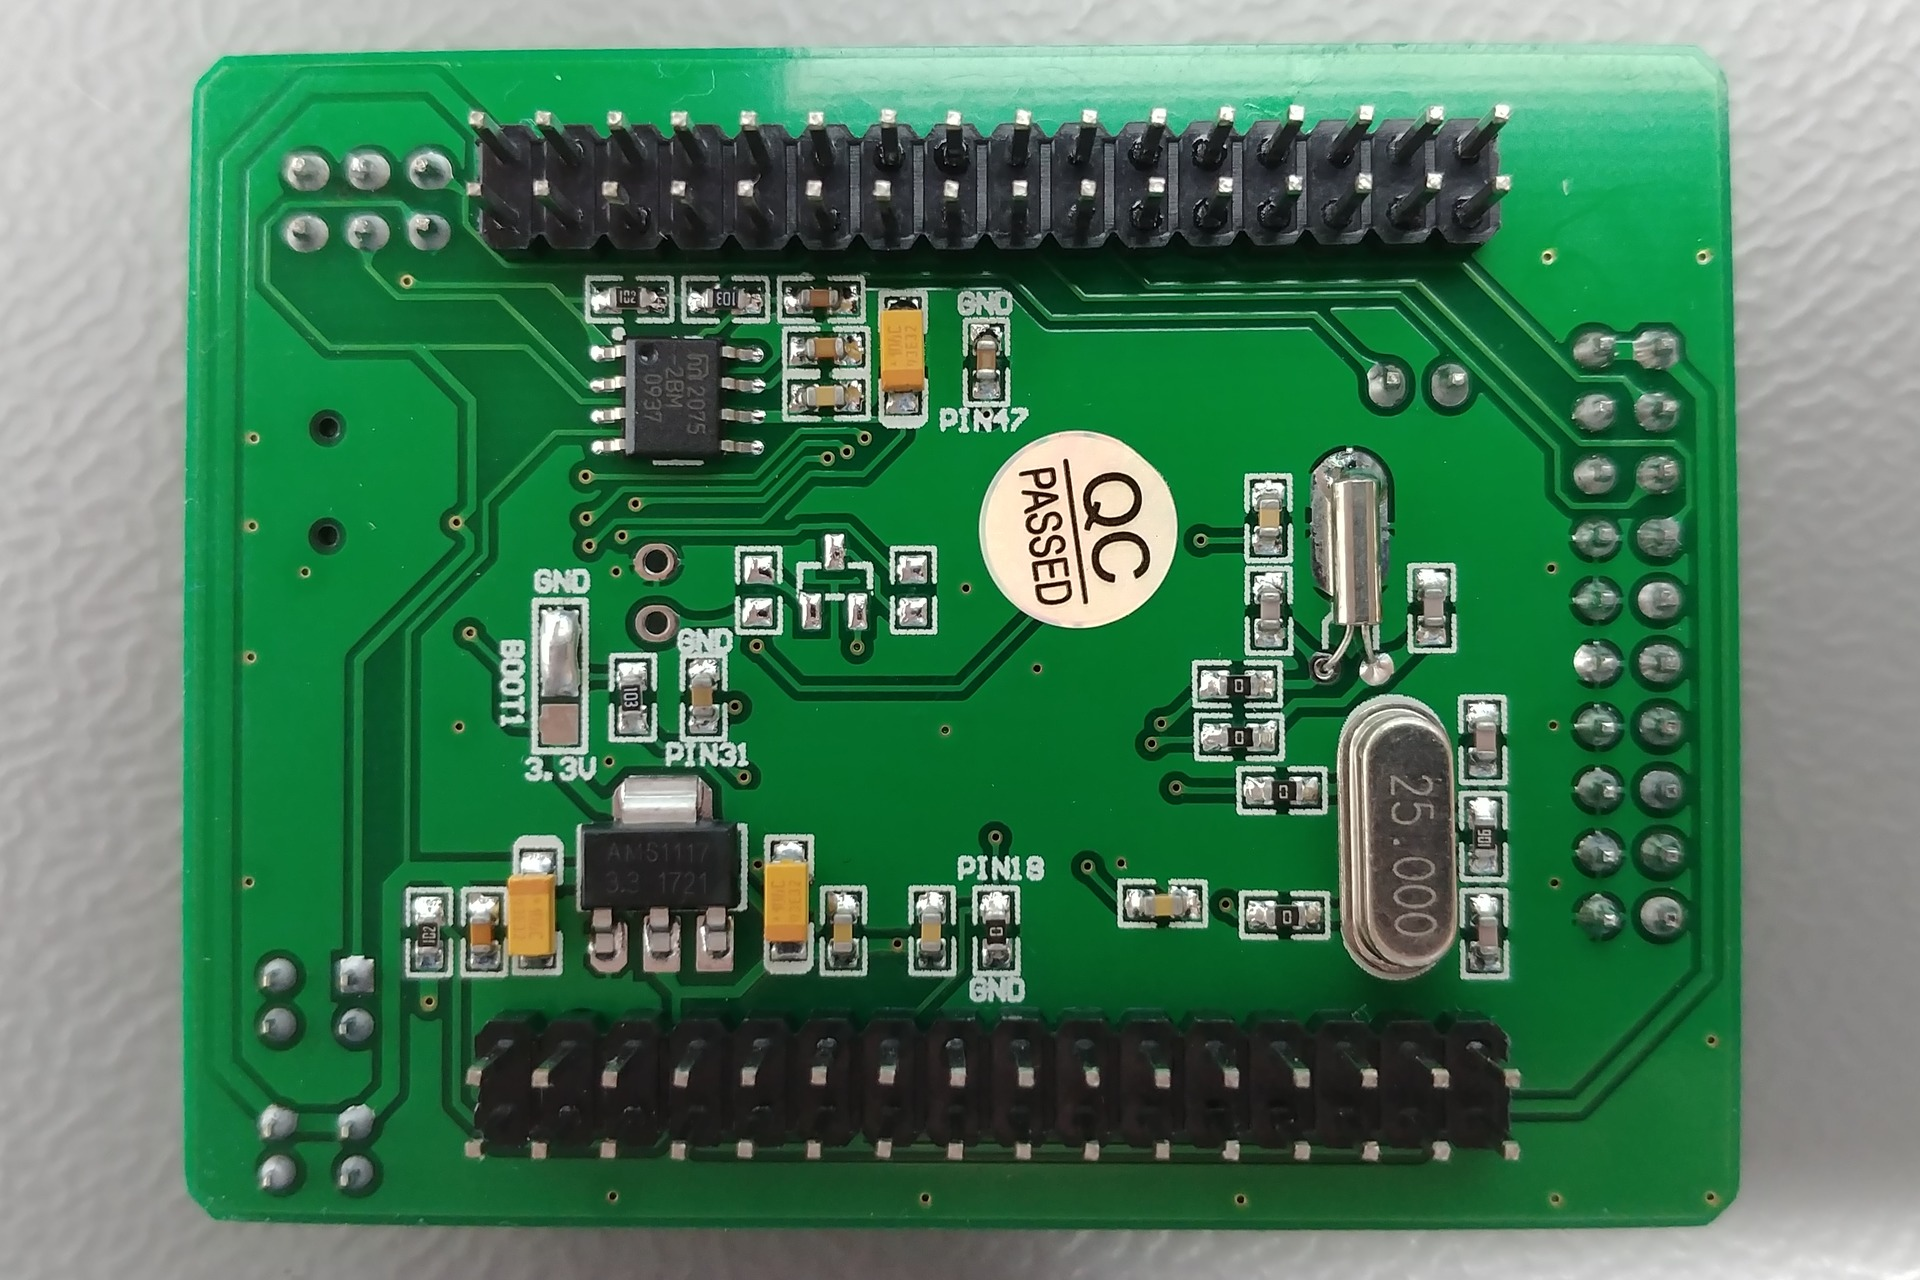 WaveShare Core205R board: Bottom view